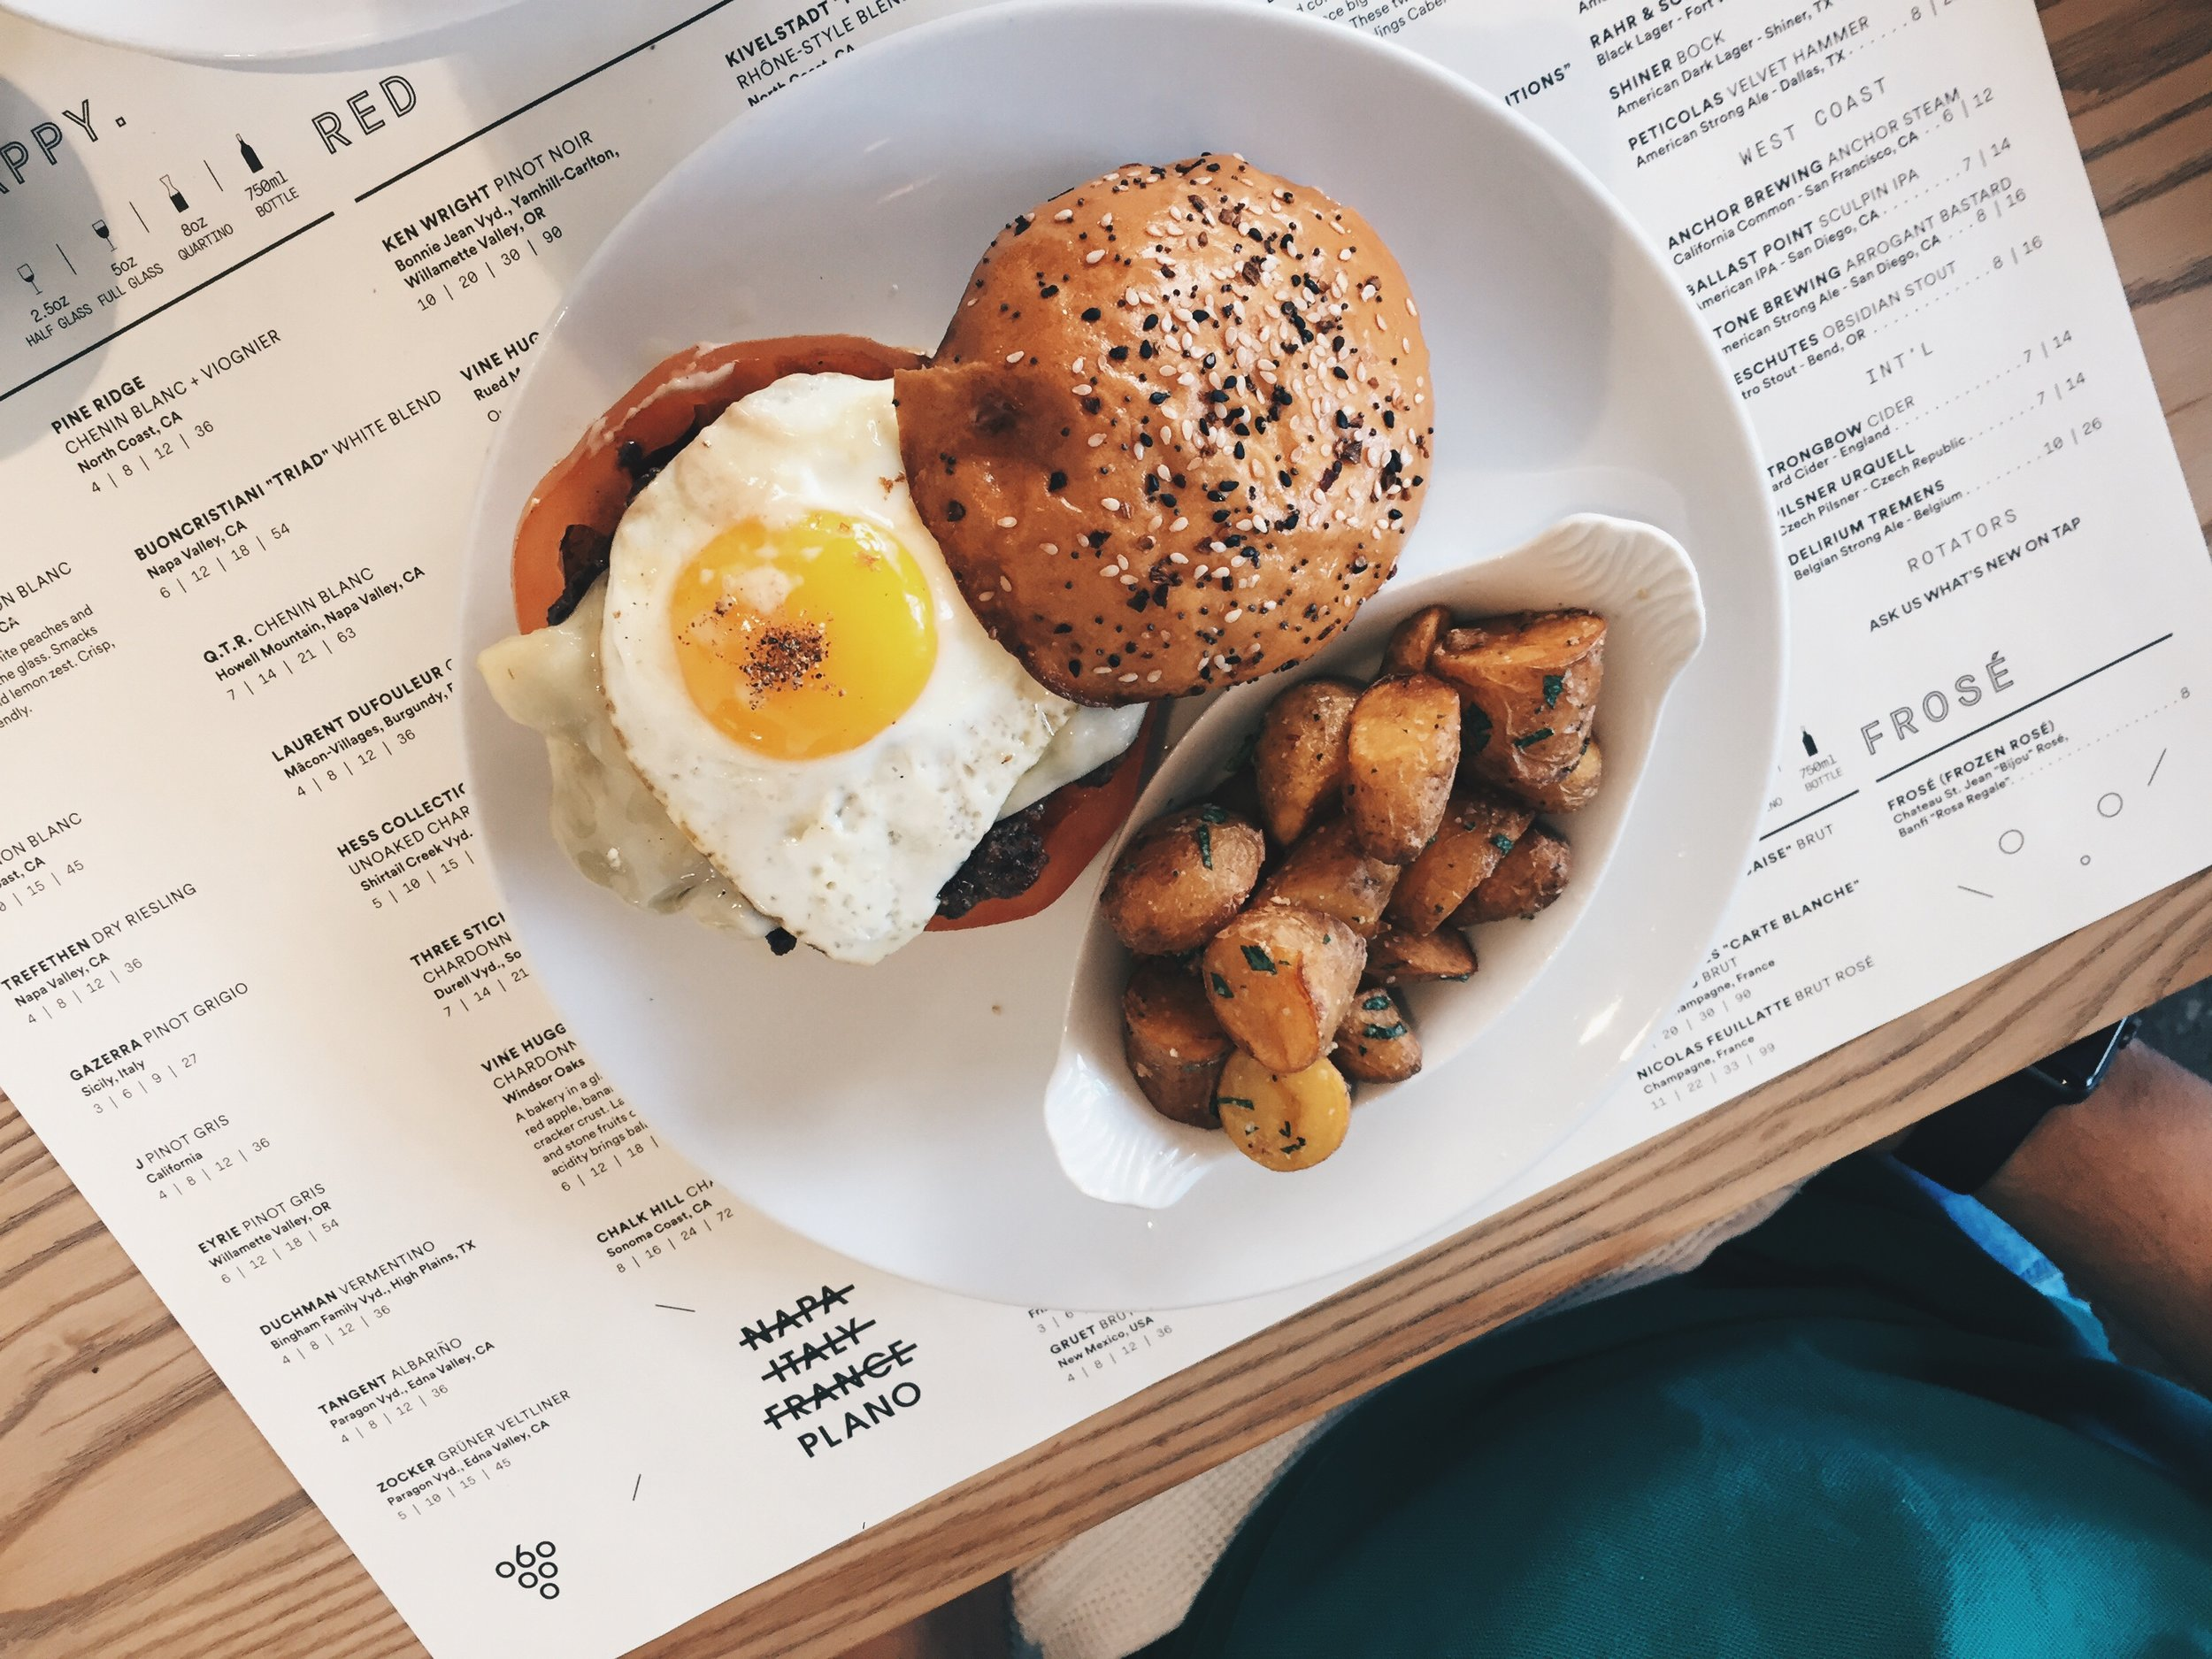 The C.A.B. Brunch Burger - cabernet smothered local akaushi patty, sunny free range egg, everything bun, raclette cheese, caramelized onions, worcestershire mayo, tomato. duck fat breakfast potatoes